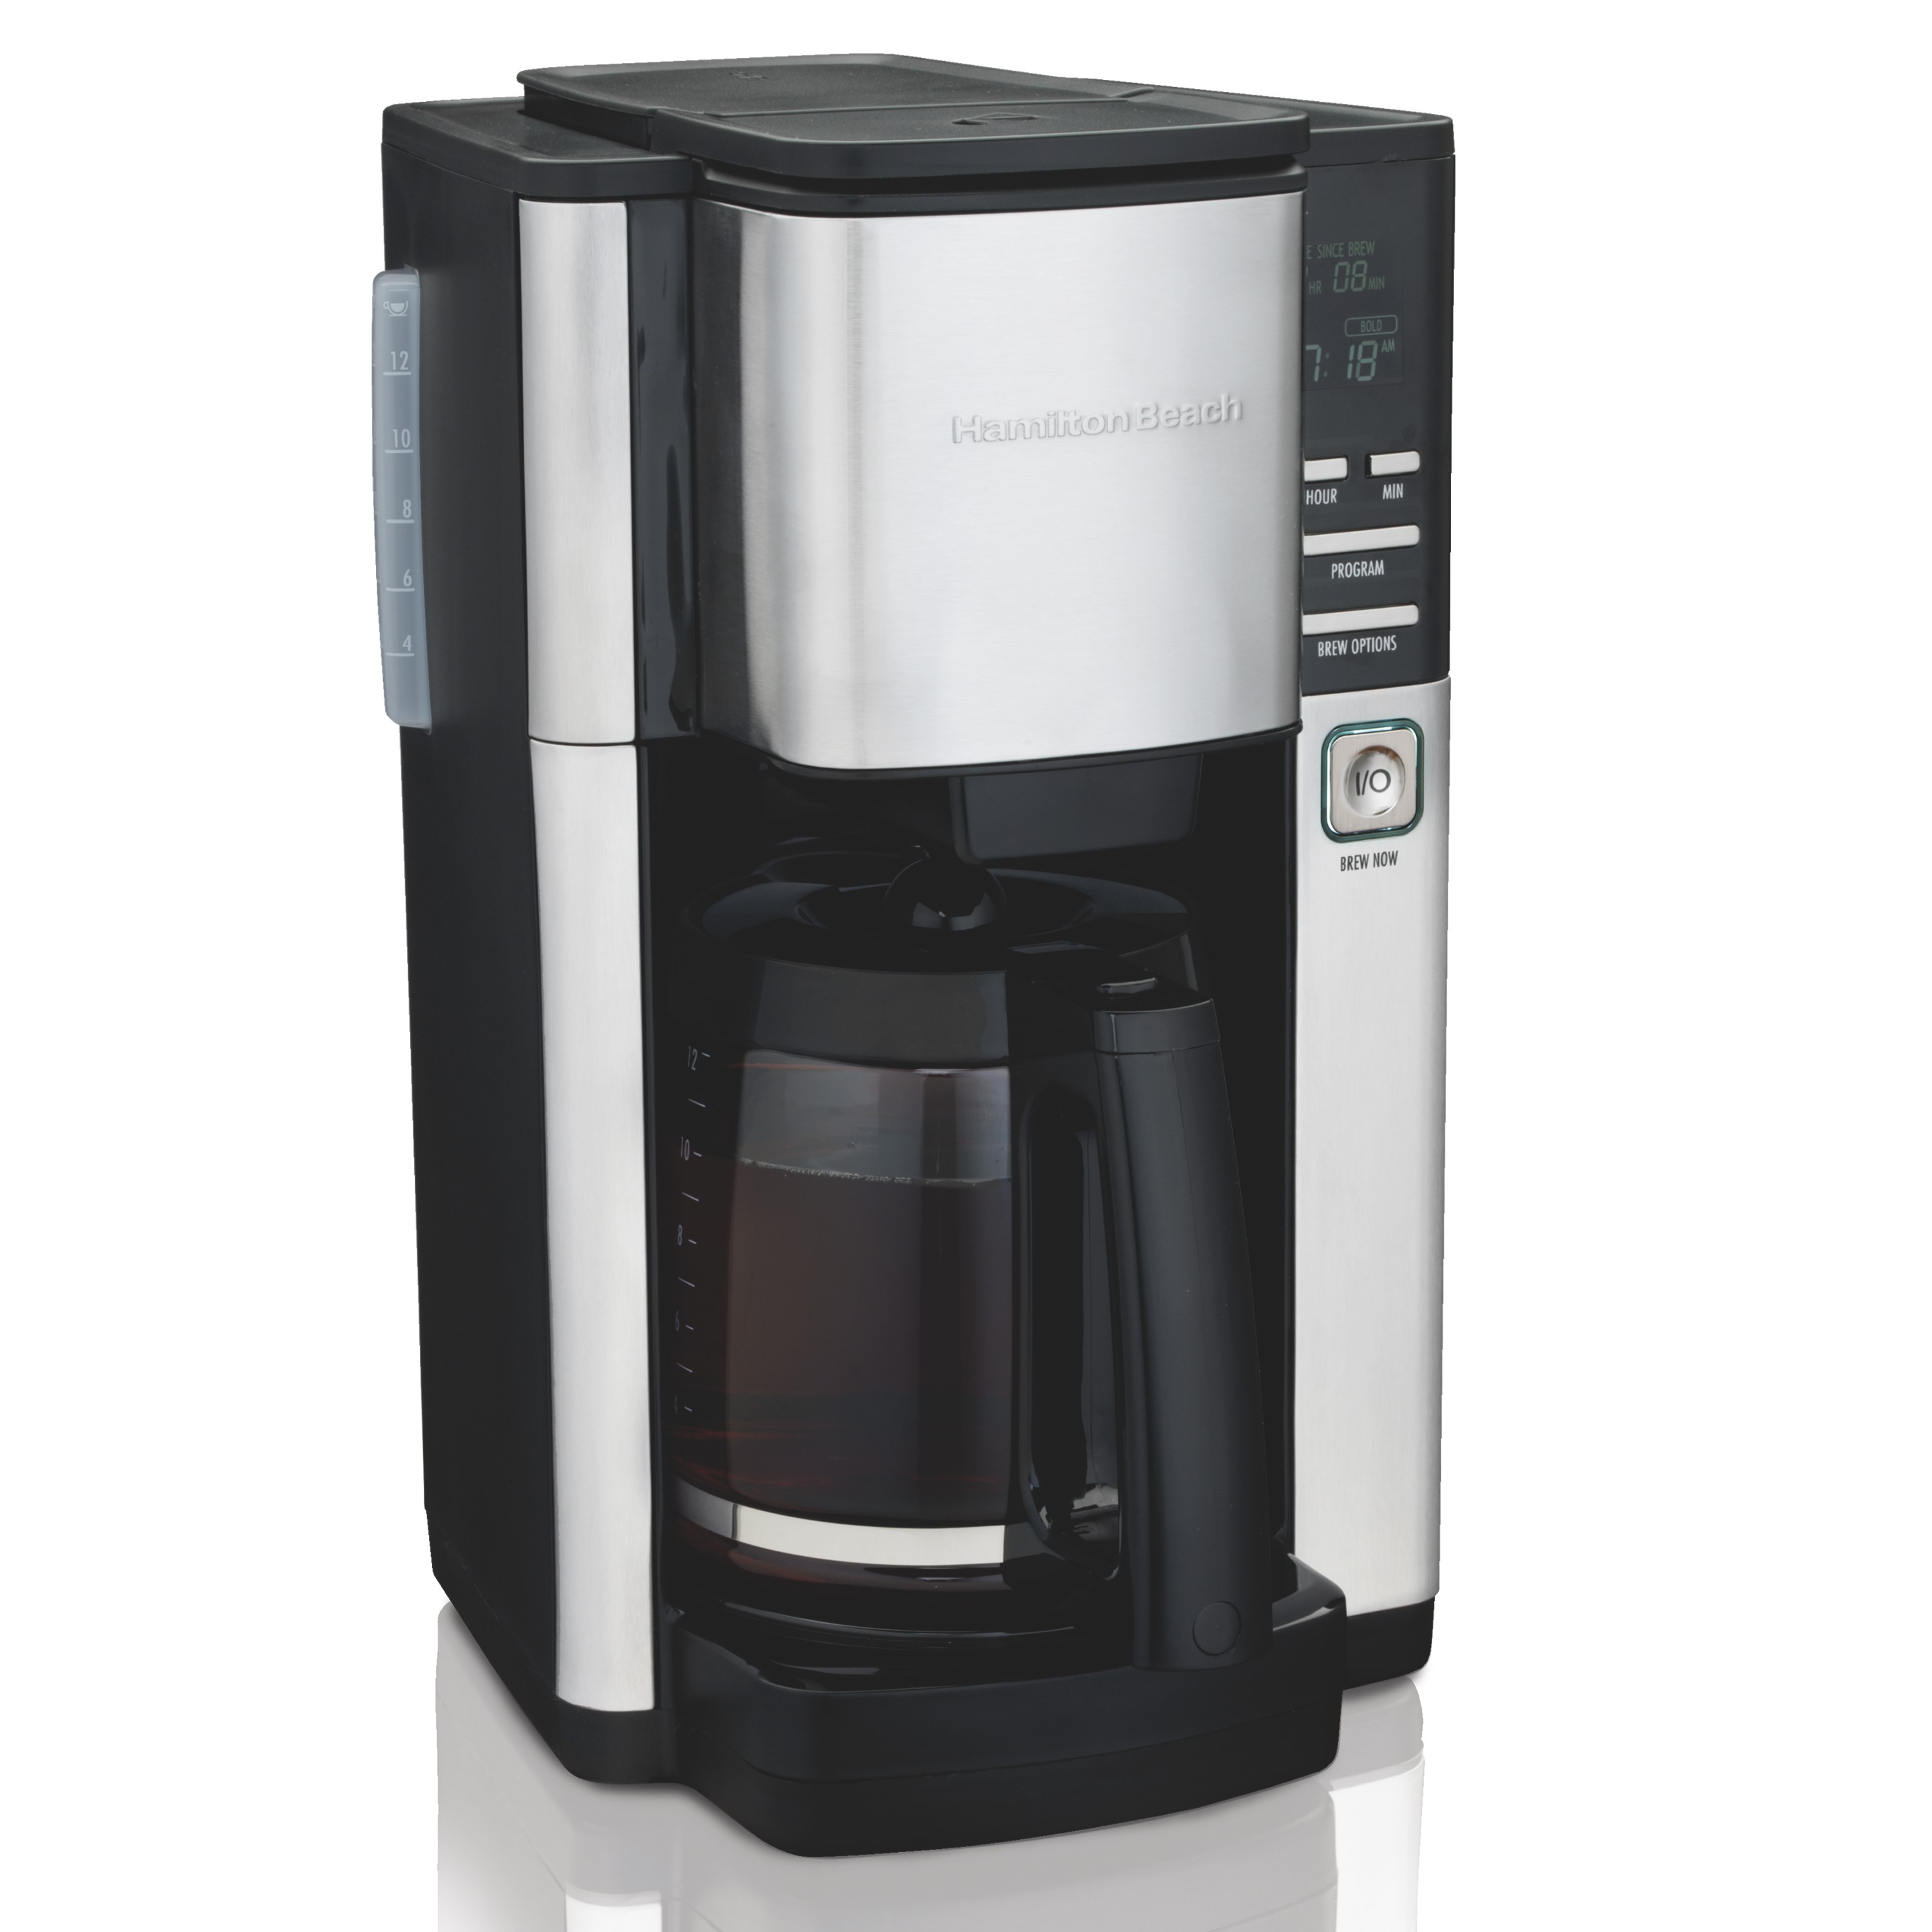 Hamilton Beach Programmable Easy Access Plus Coffee Maker Model# 46380, 1 Each